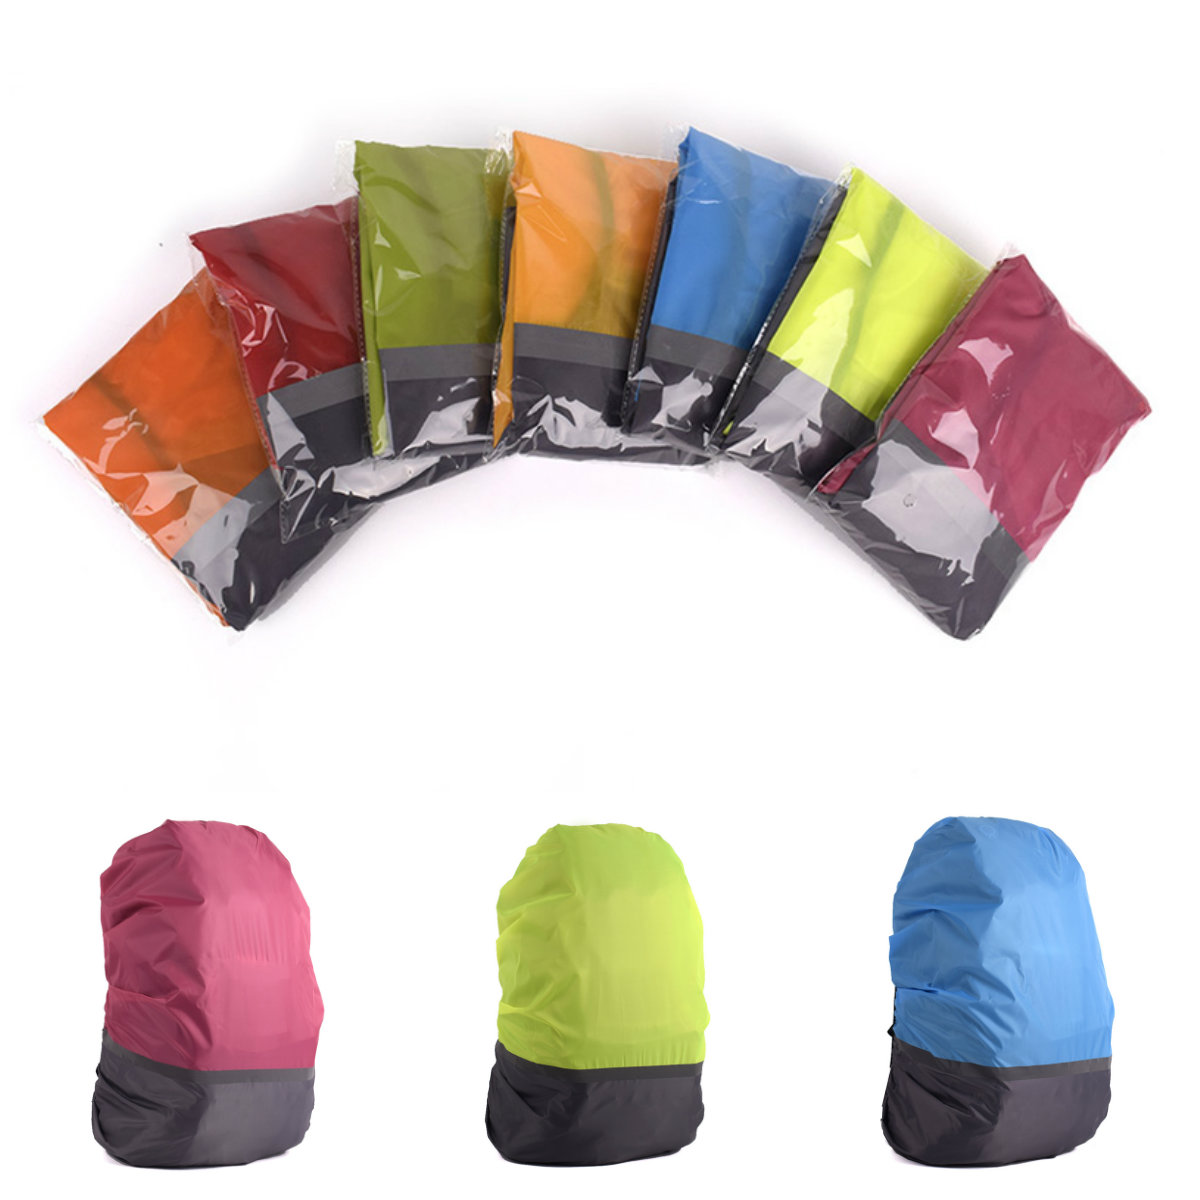 1PCS Outdoor Camping 30-40L Reflective Waterproof Backpack Rain Cover Bag Cover Travel Rainproof Dustproof Covers For Backpacks